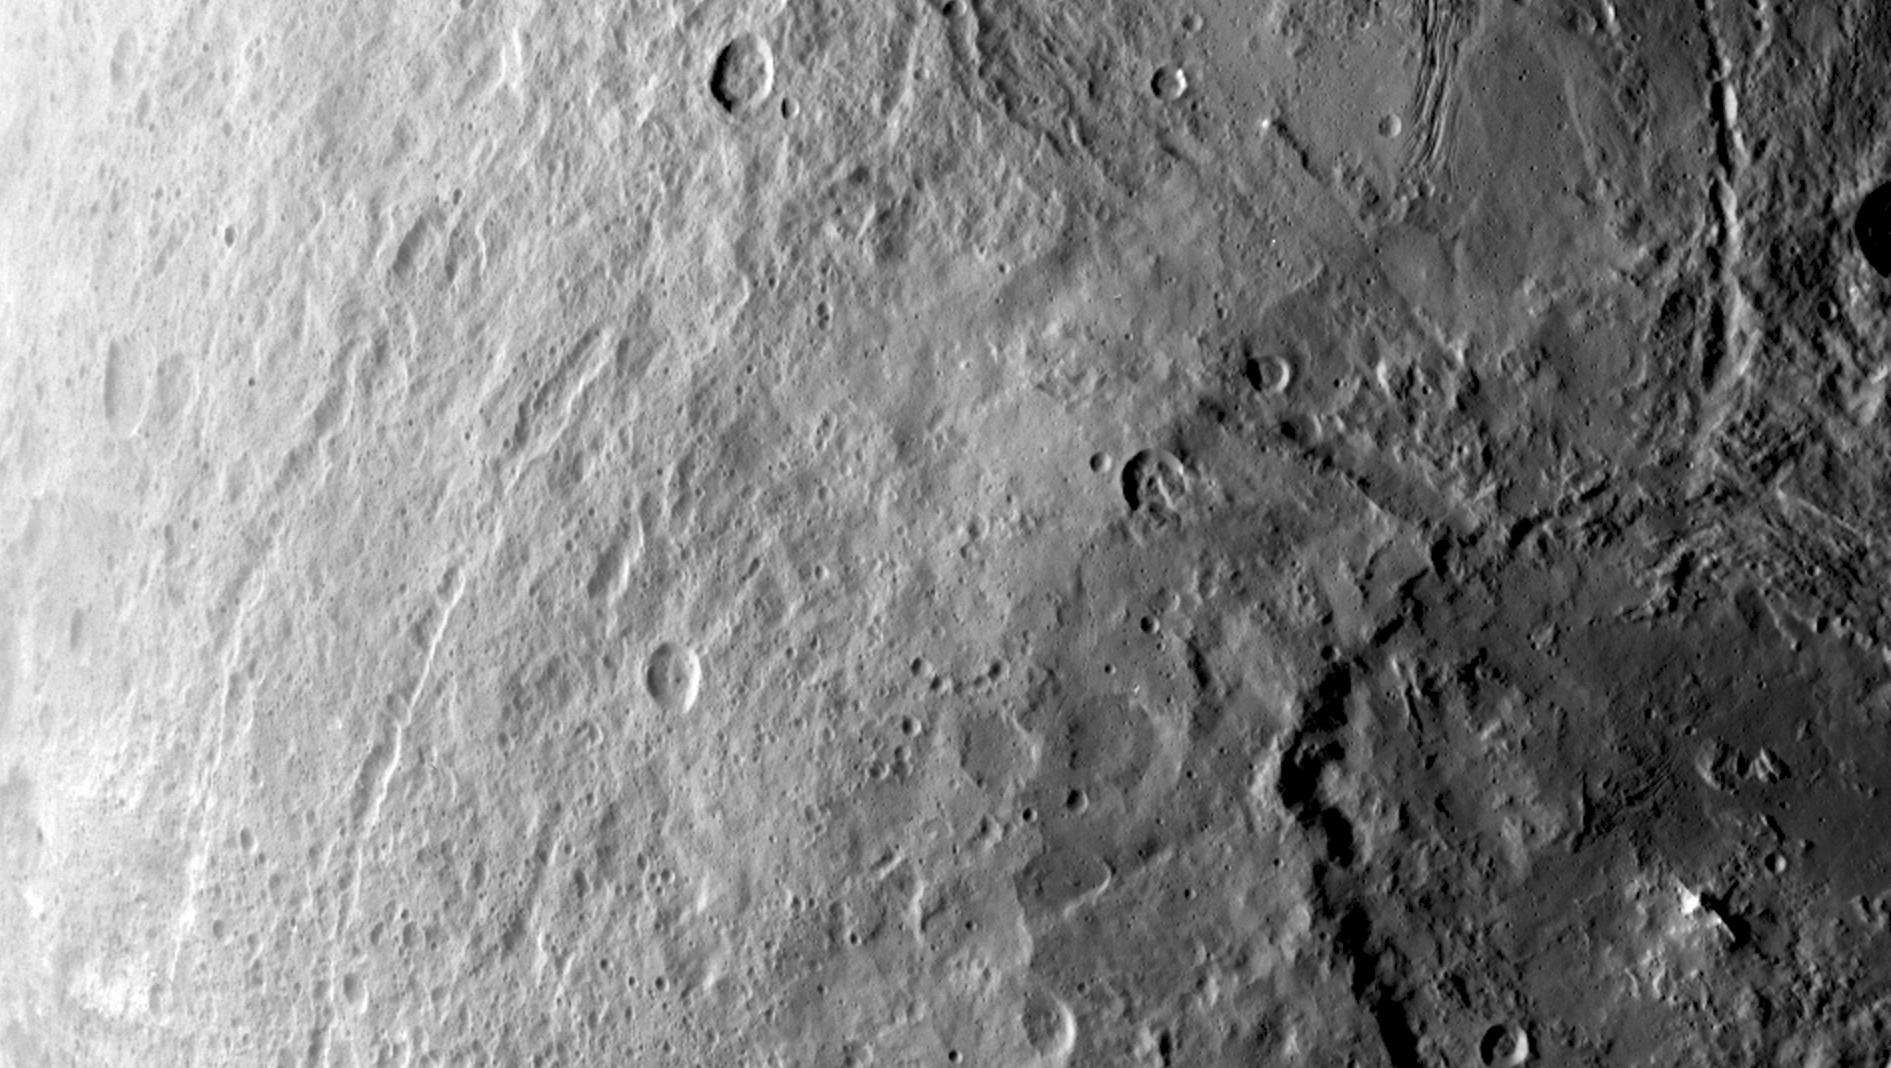 A large crater in the southern hemisphere of the dwarf planet Ceres is seen in this image taken by Dawn on June 6. Credit: NASA/JPL-Caltech/UCLA/MPS/DLR/IDA